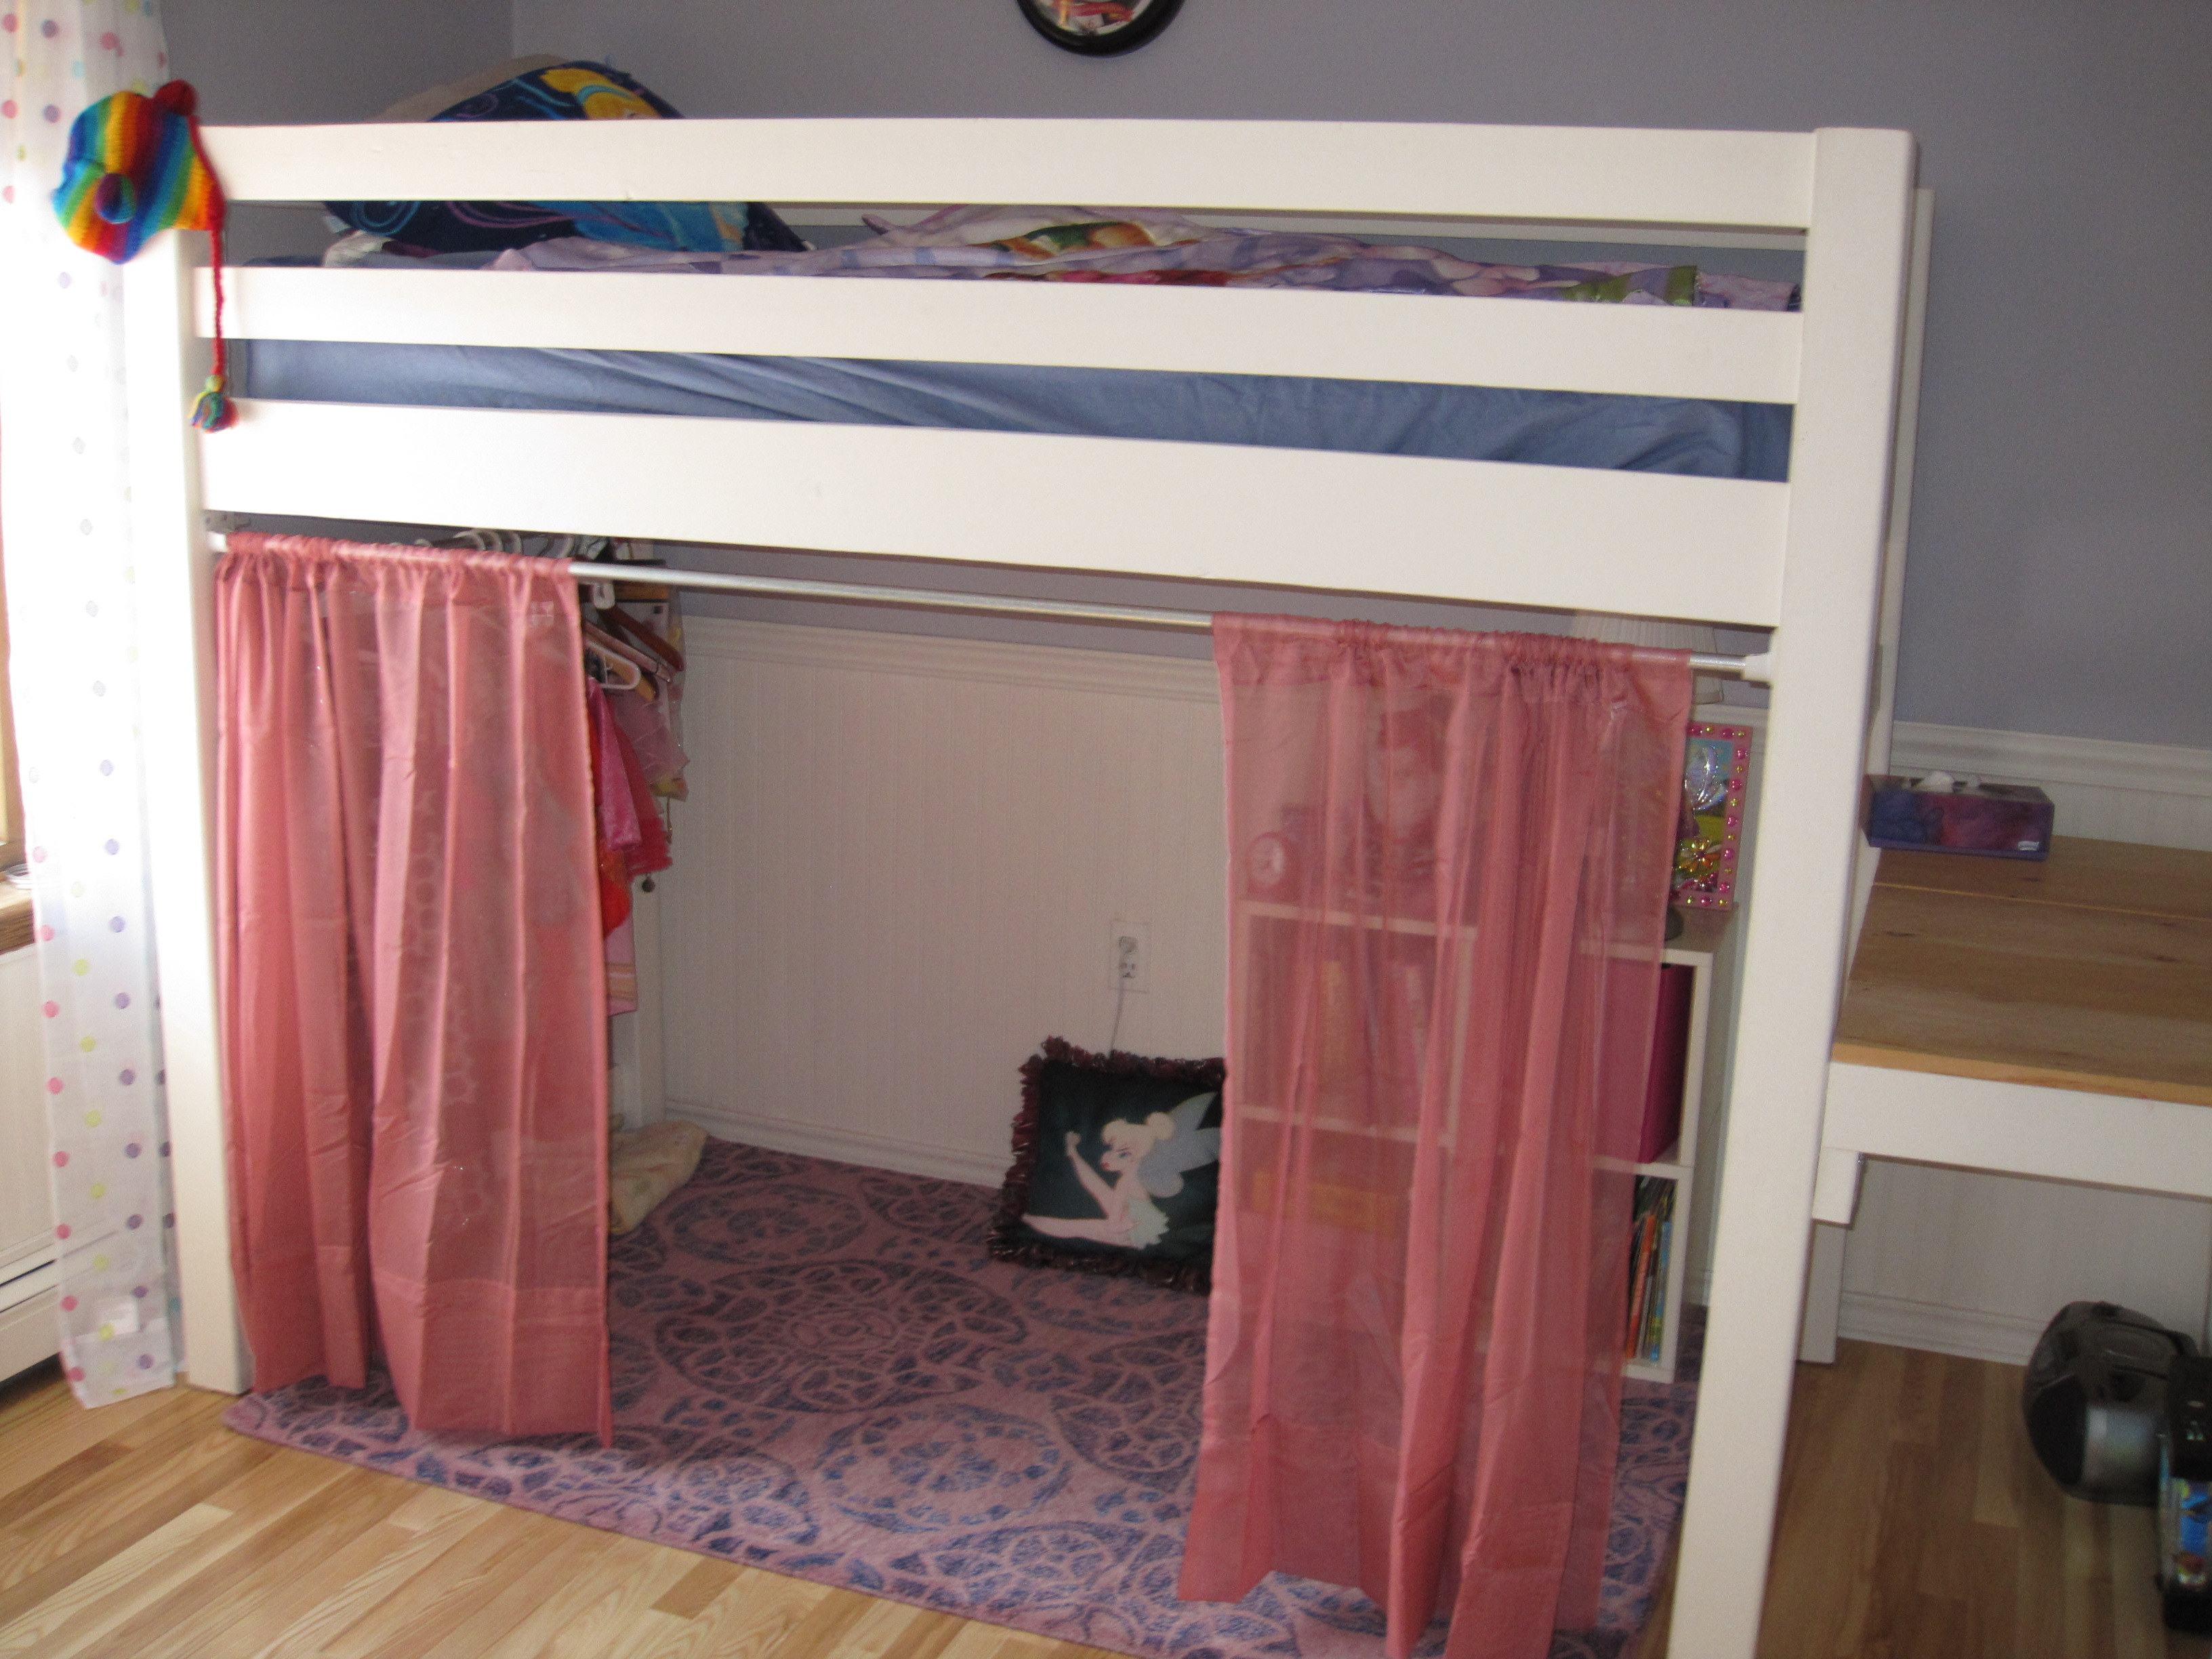 Bunk Bed Curtains | Diy Bunk Bed Curtains | Bunk Beds Tent